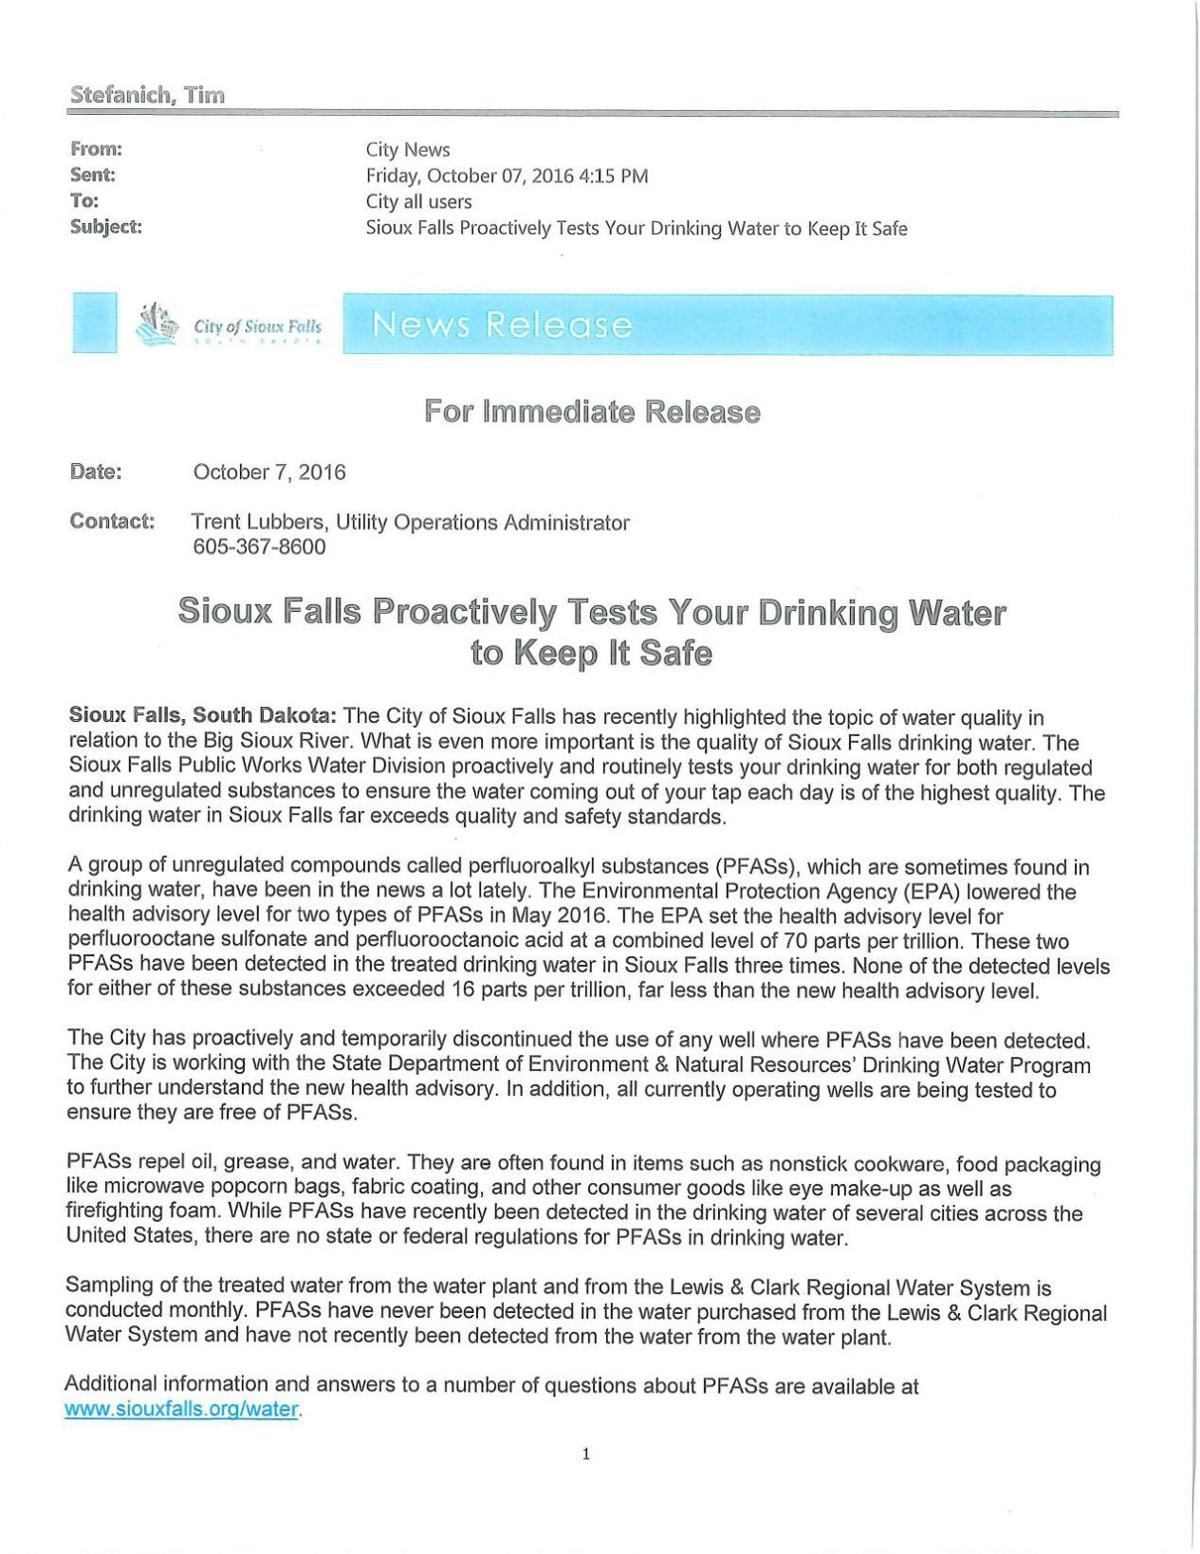 2016 Sioux Falls press release noting PFAS detections